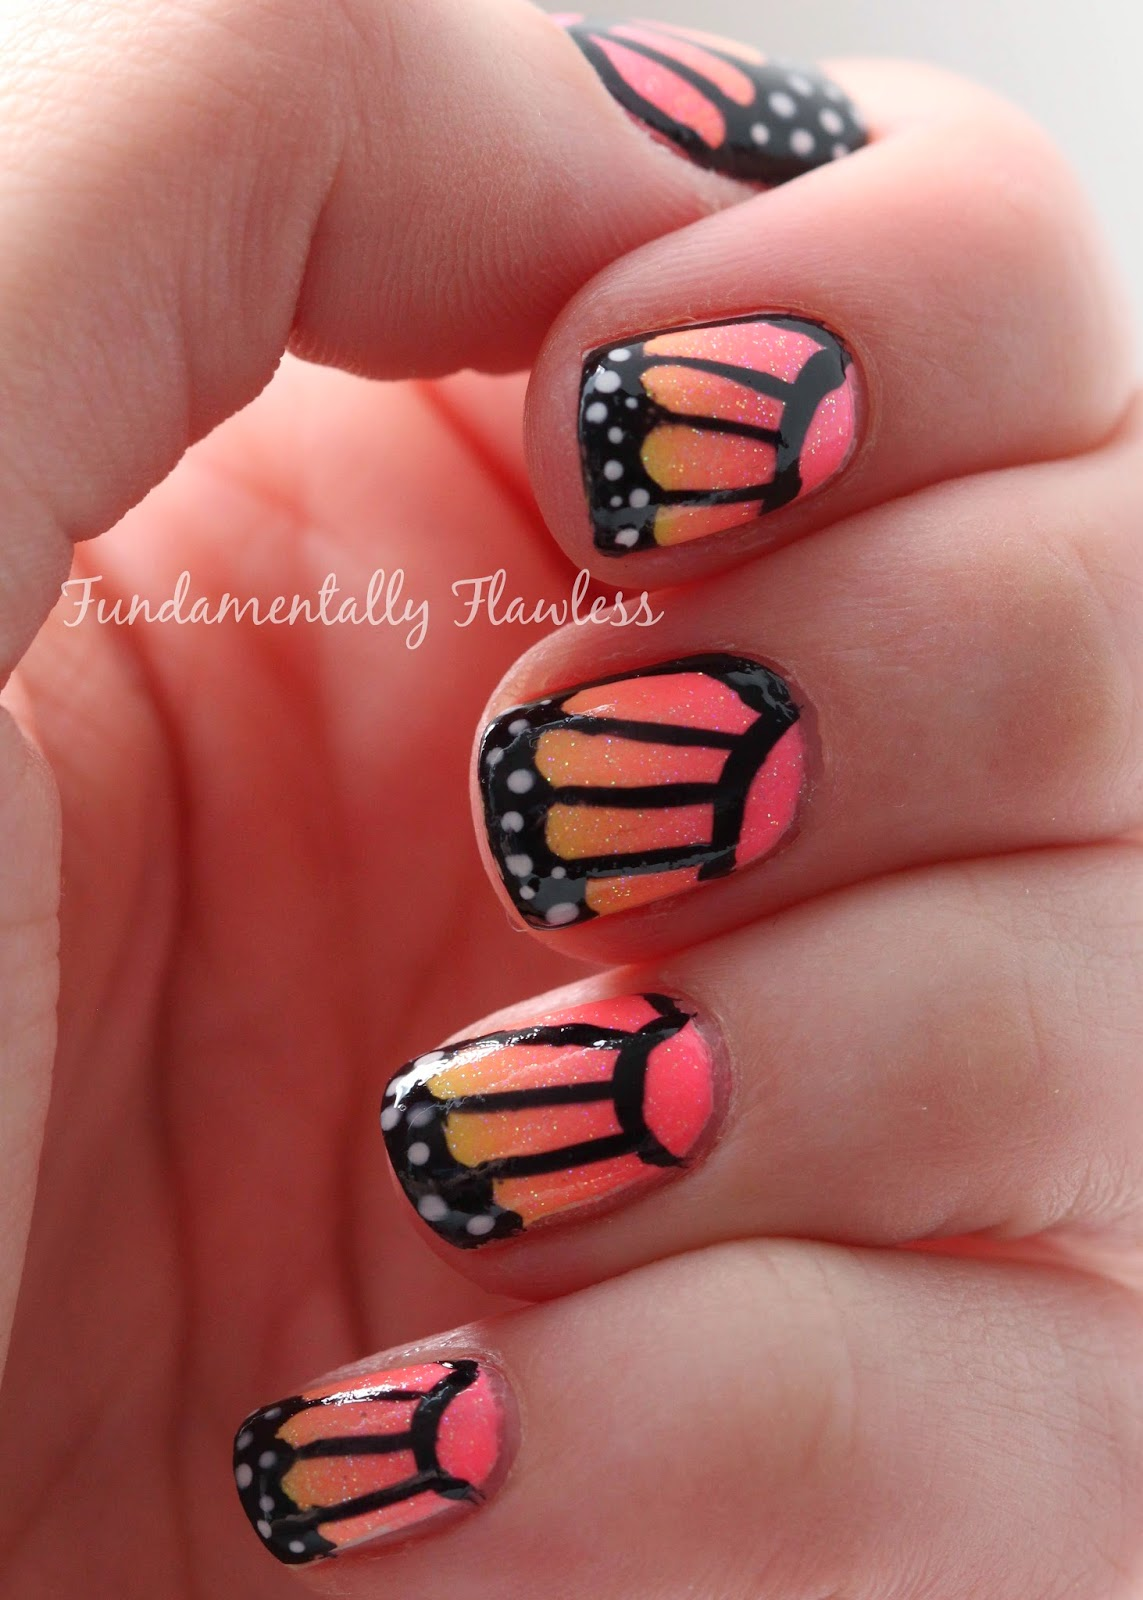 Butterfly Nail Art with Models Own Polish for Tans Gradient